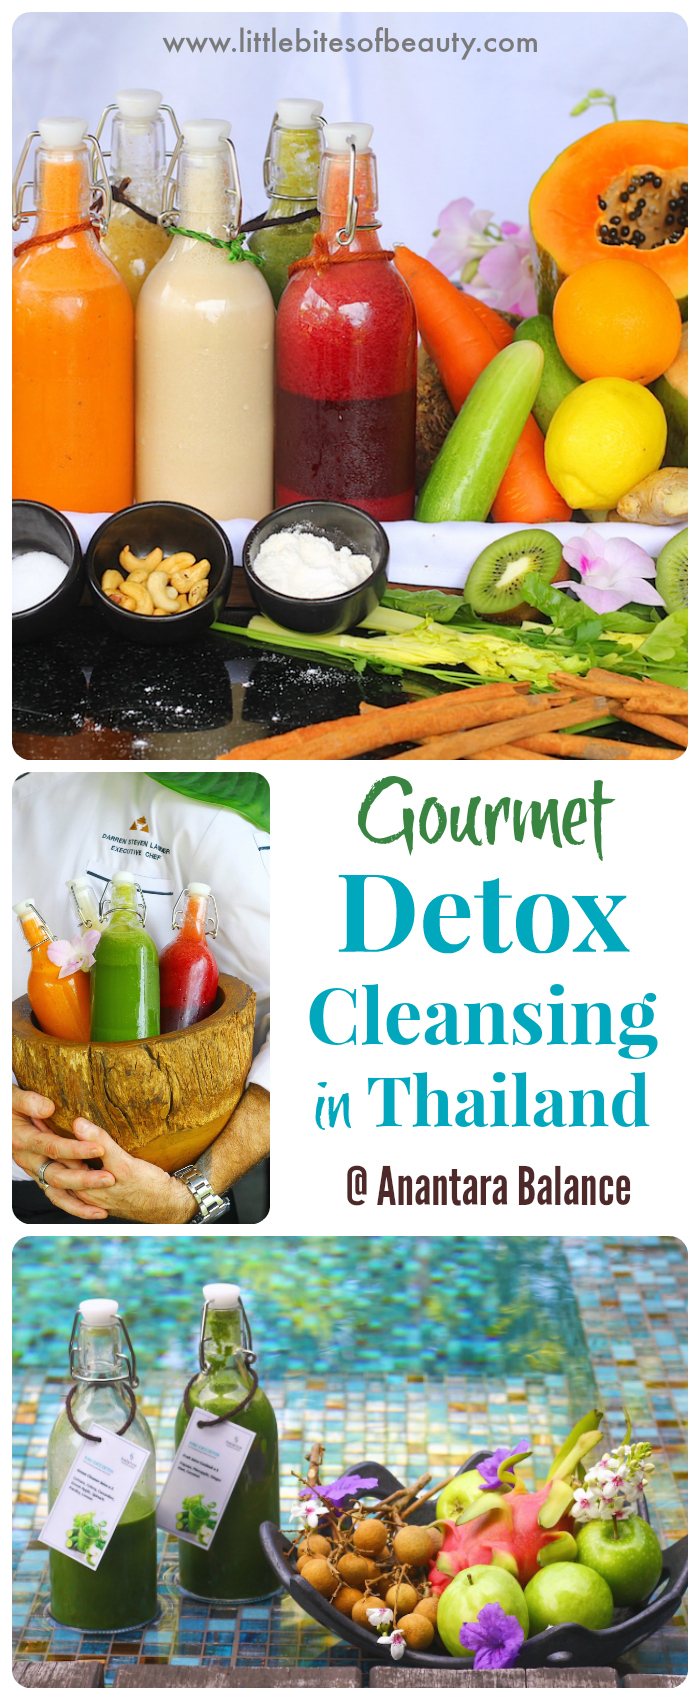 Gourmet Detox Cleansing in Thailand with Anantara Balance